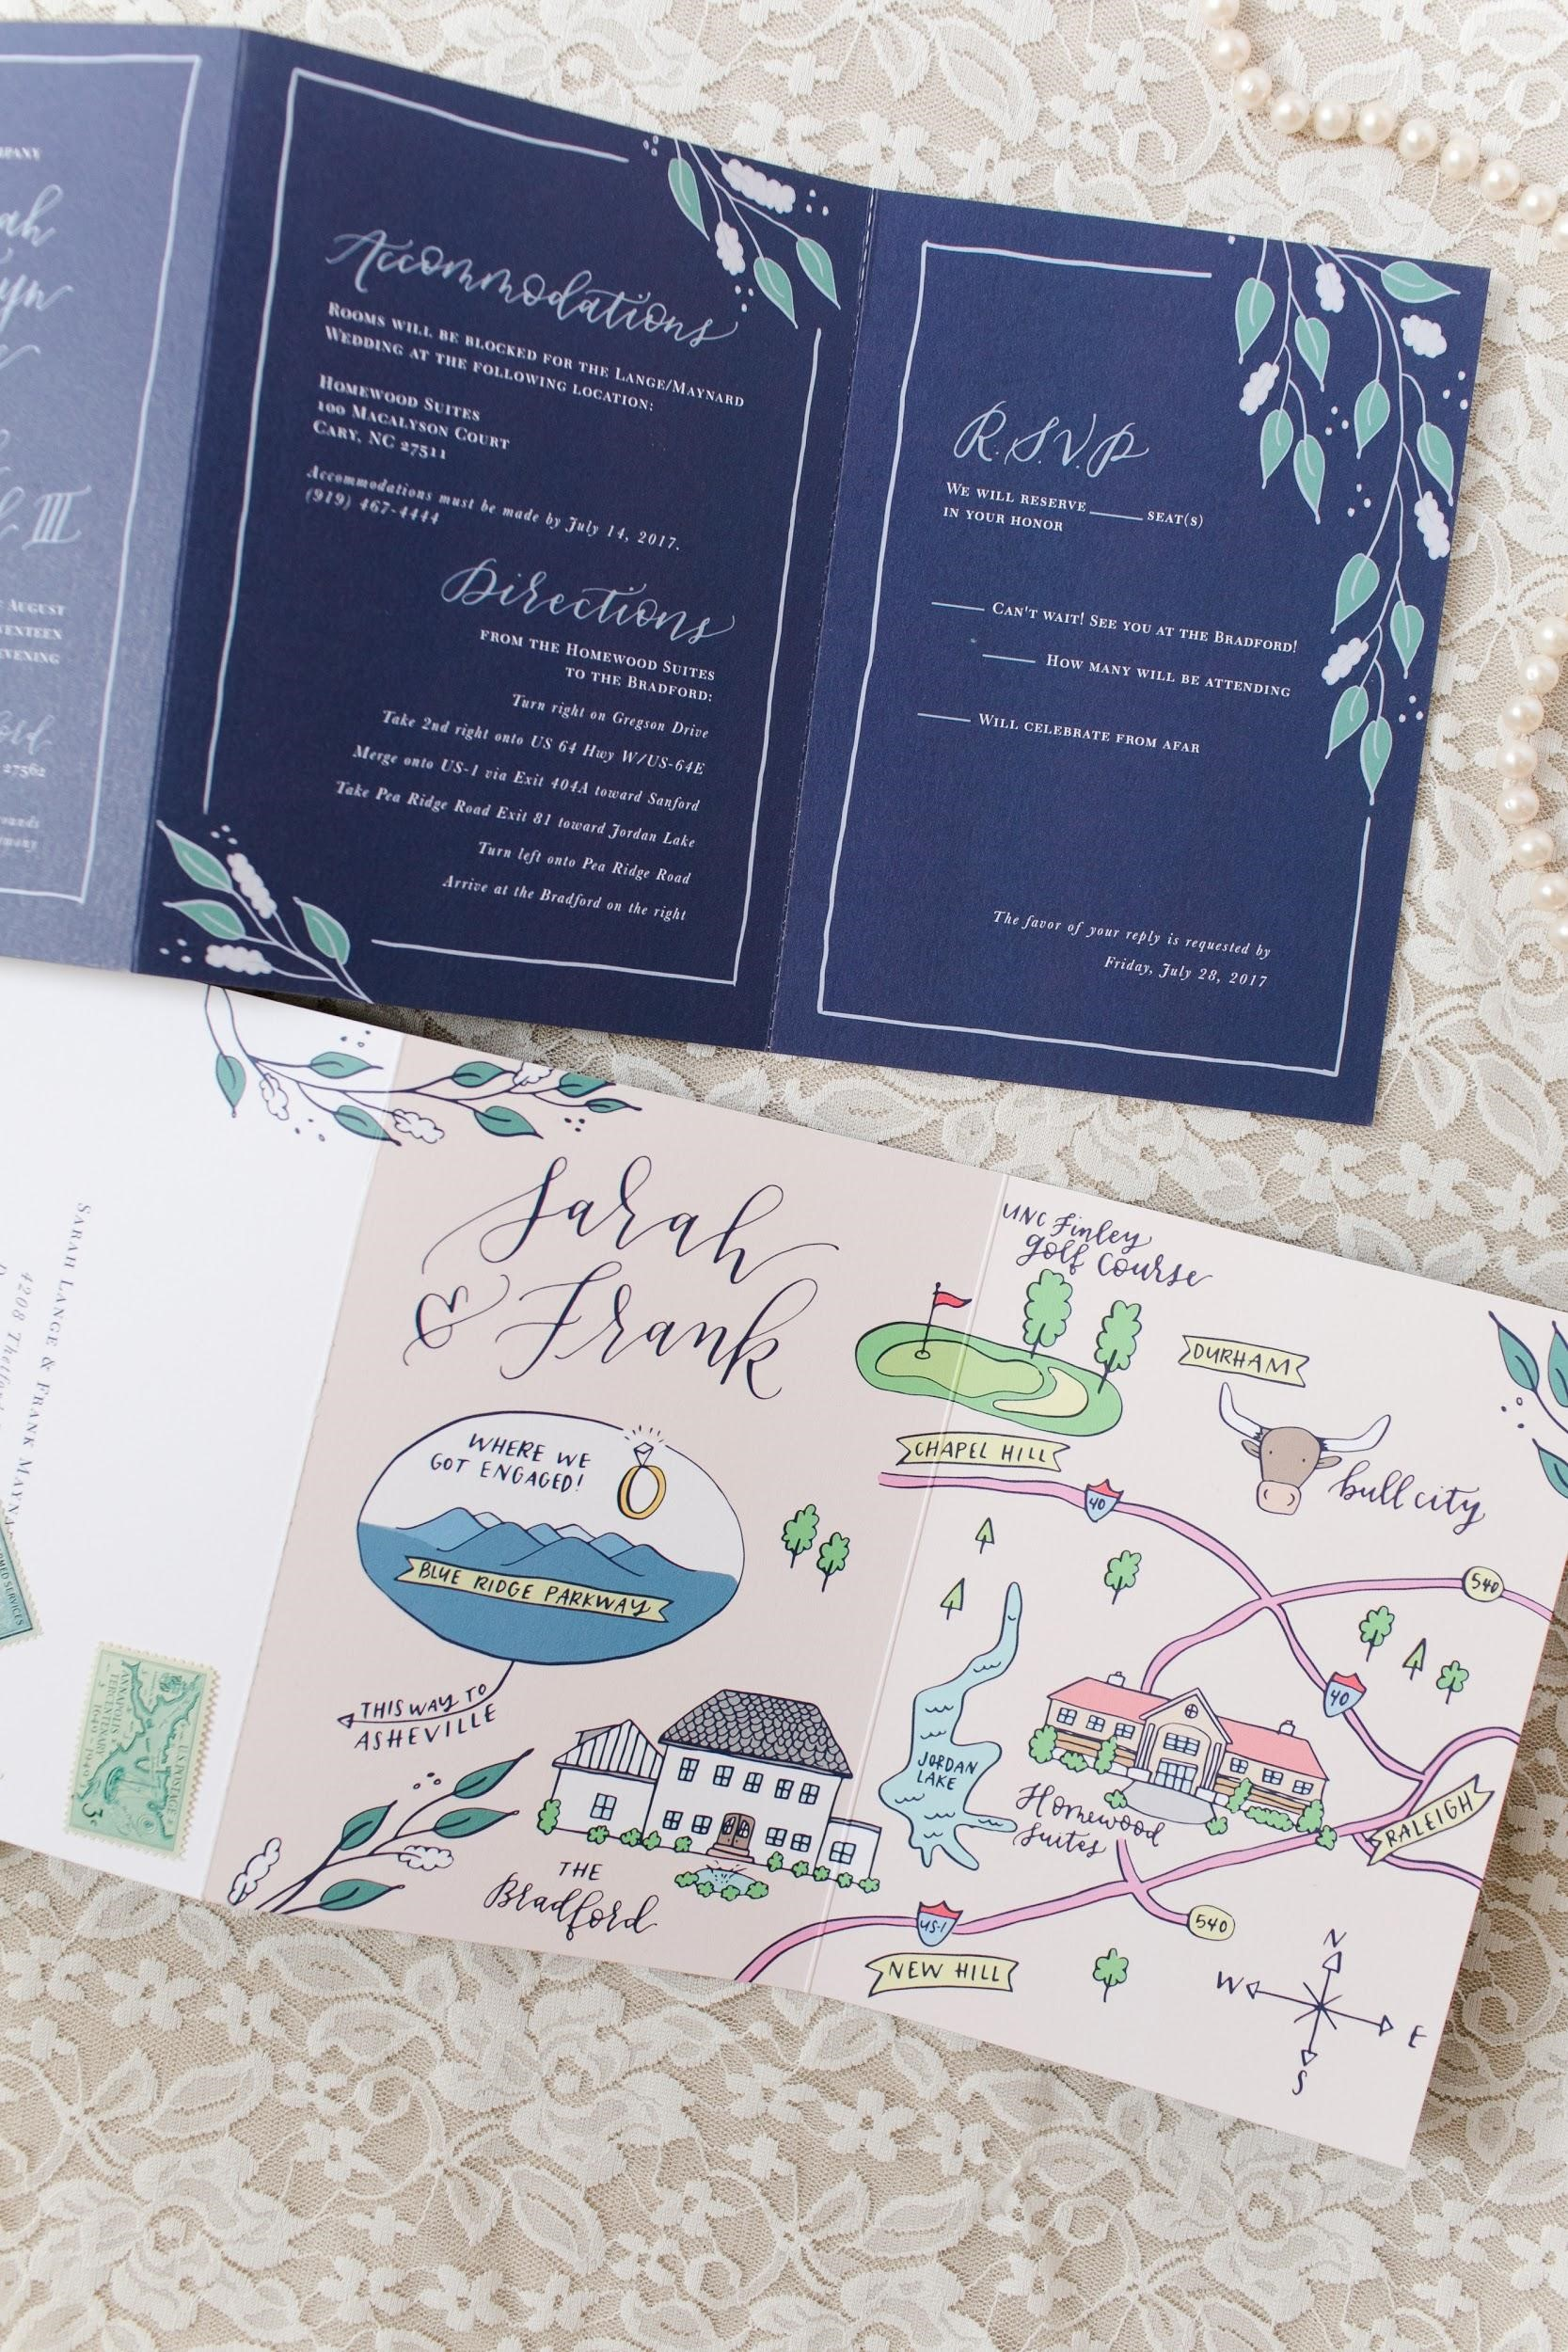 To let guests know where the major wedding events will take place - ...